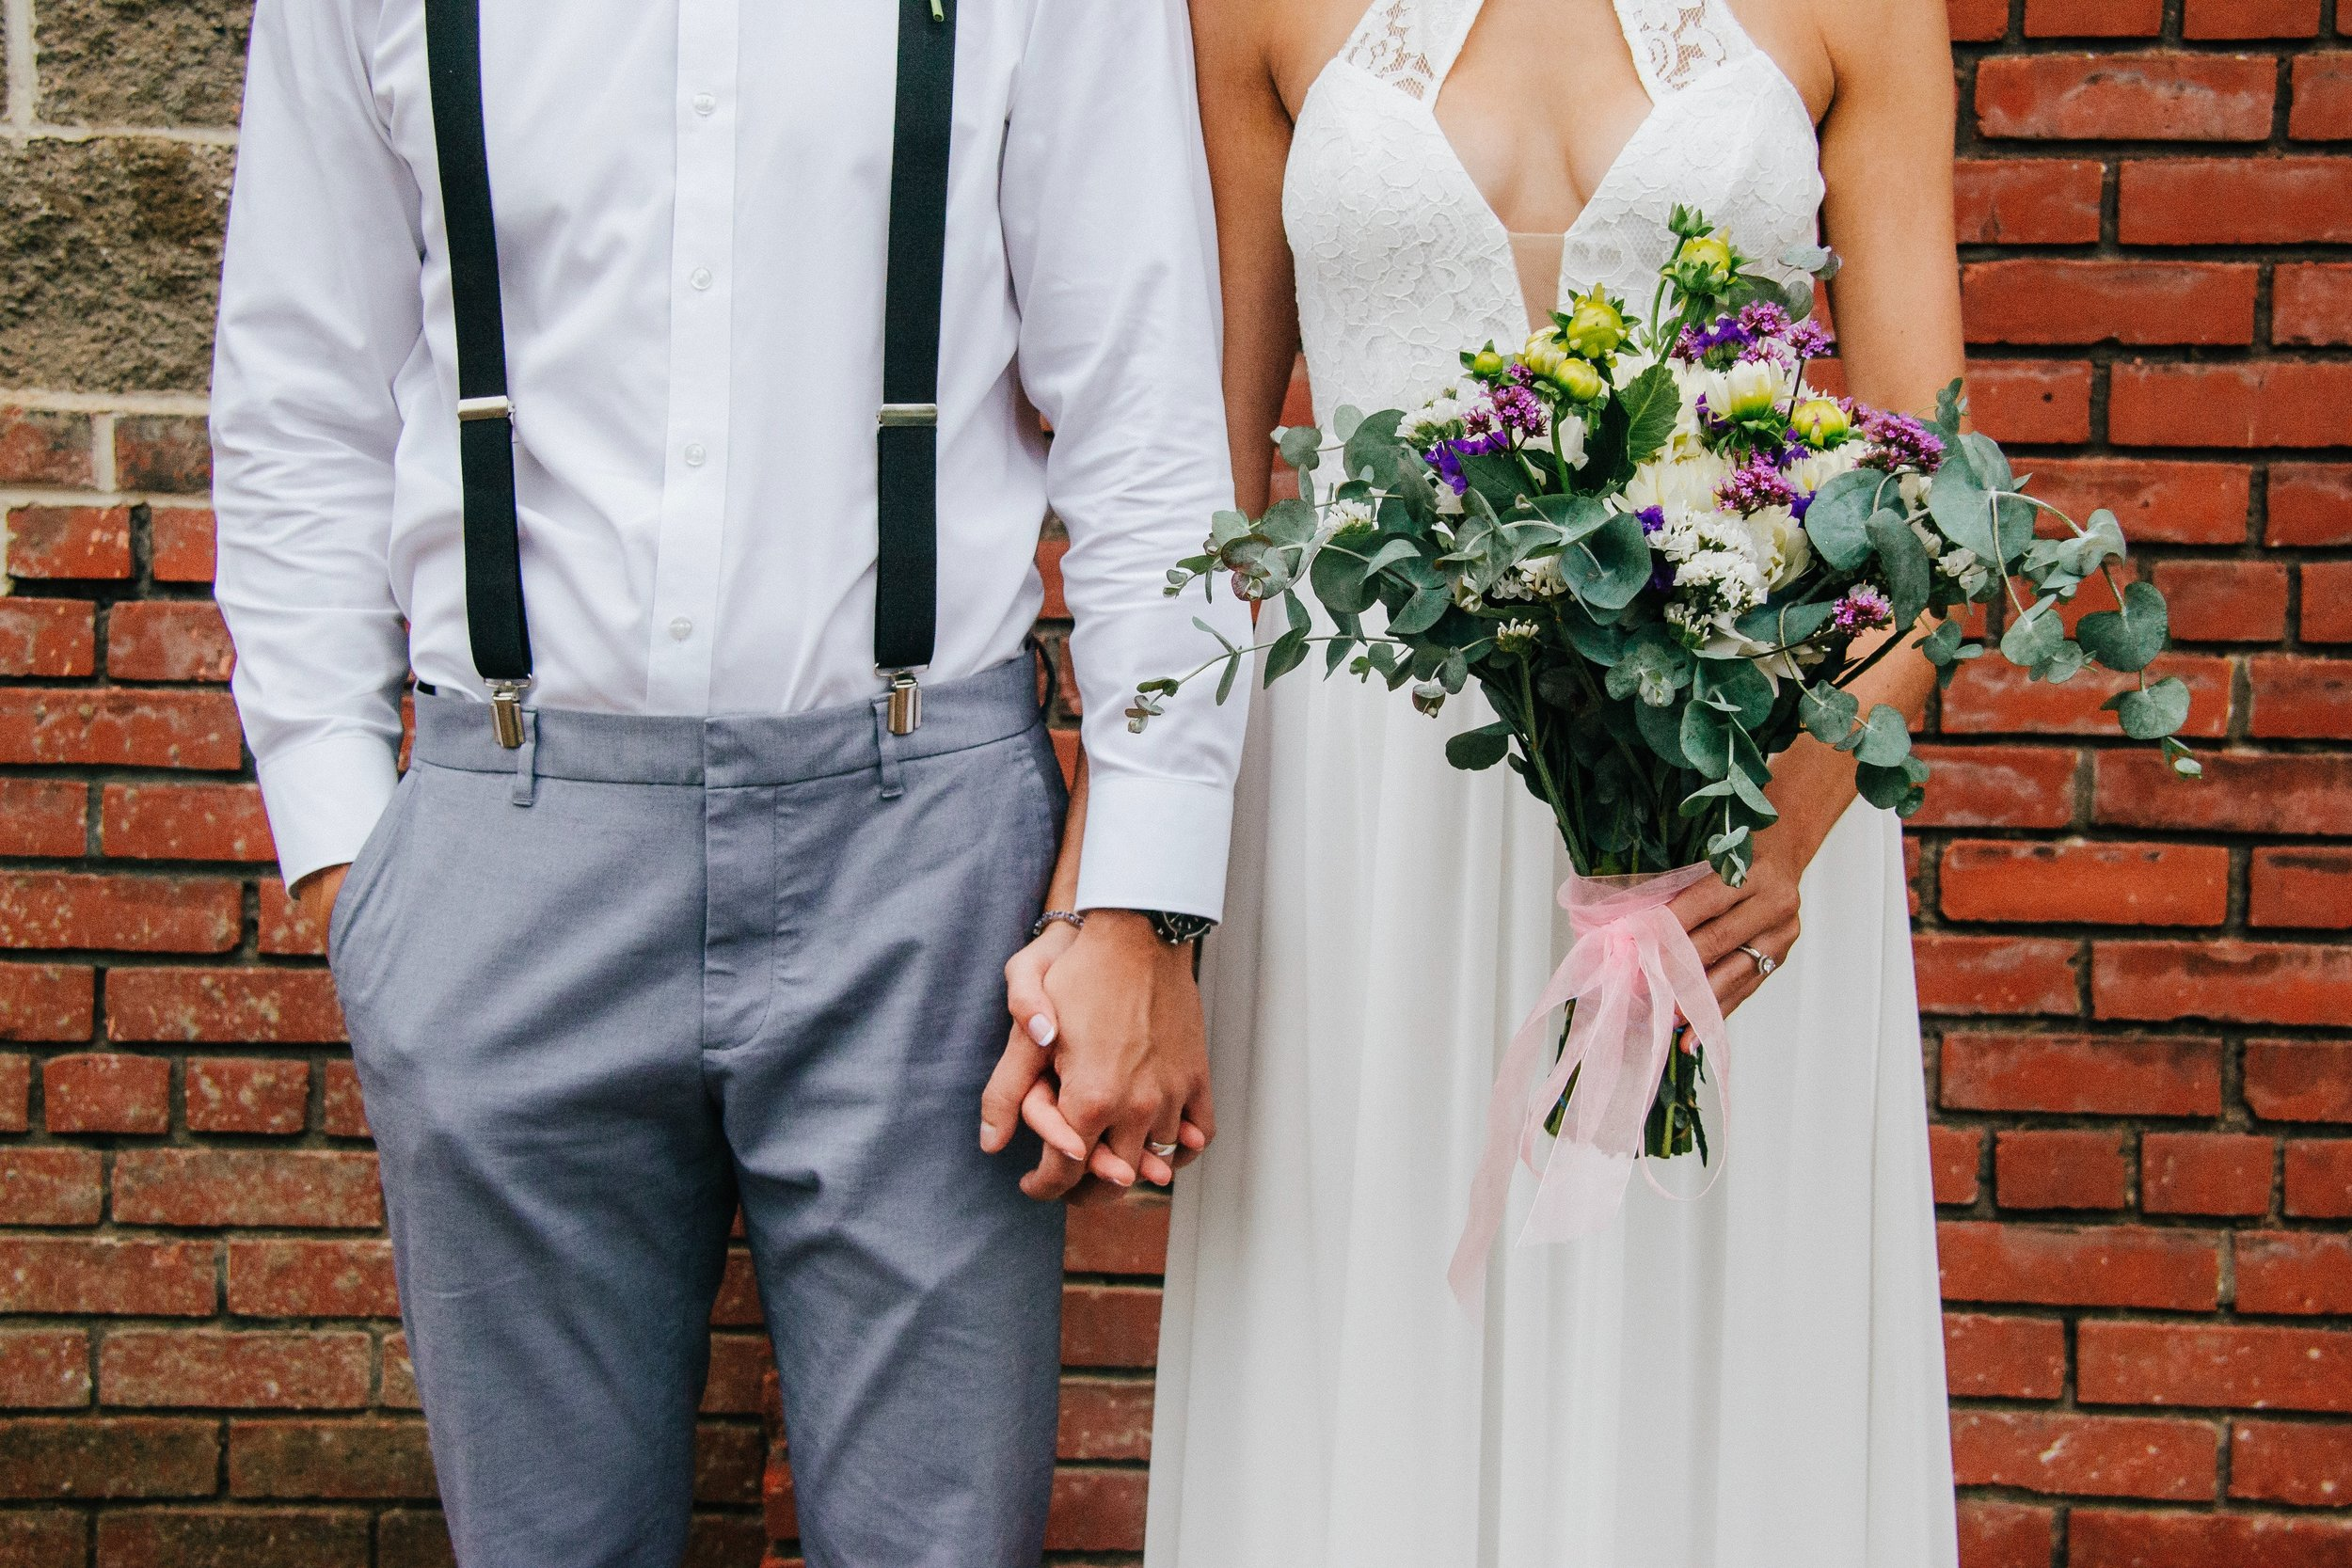 Wedding Gifts That Give Back -